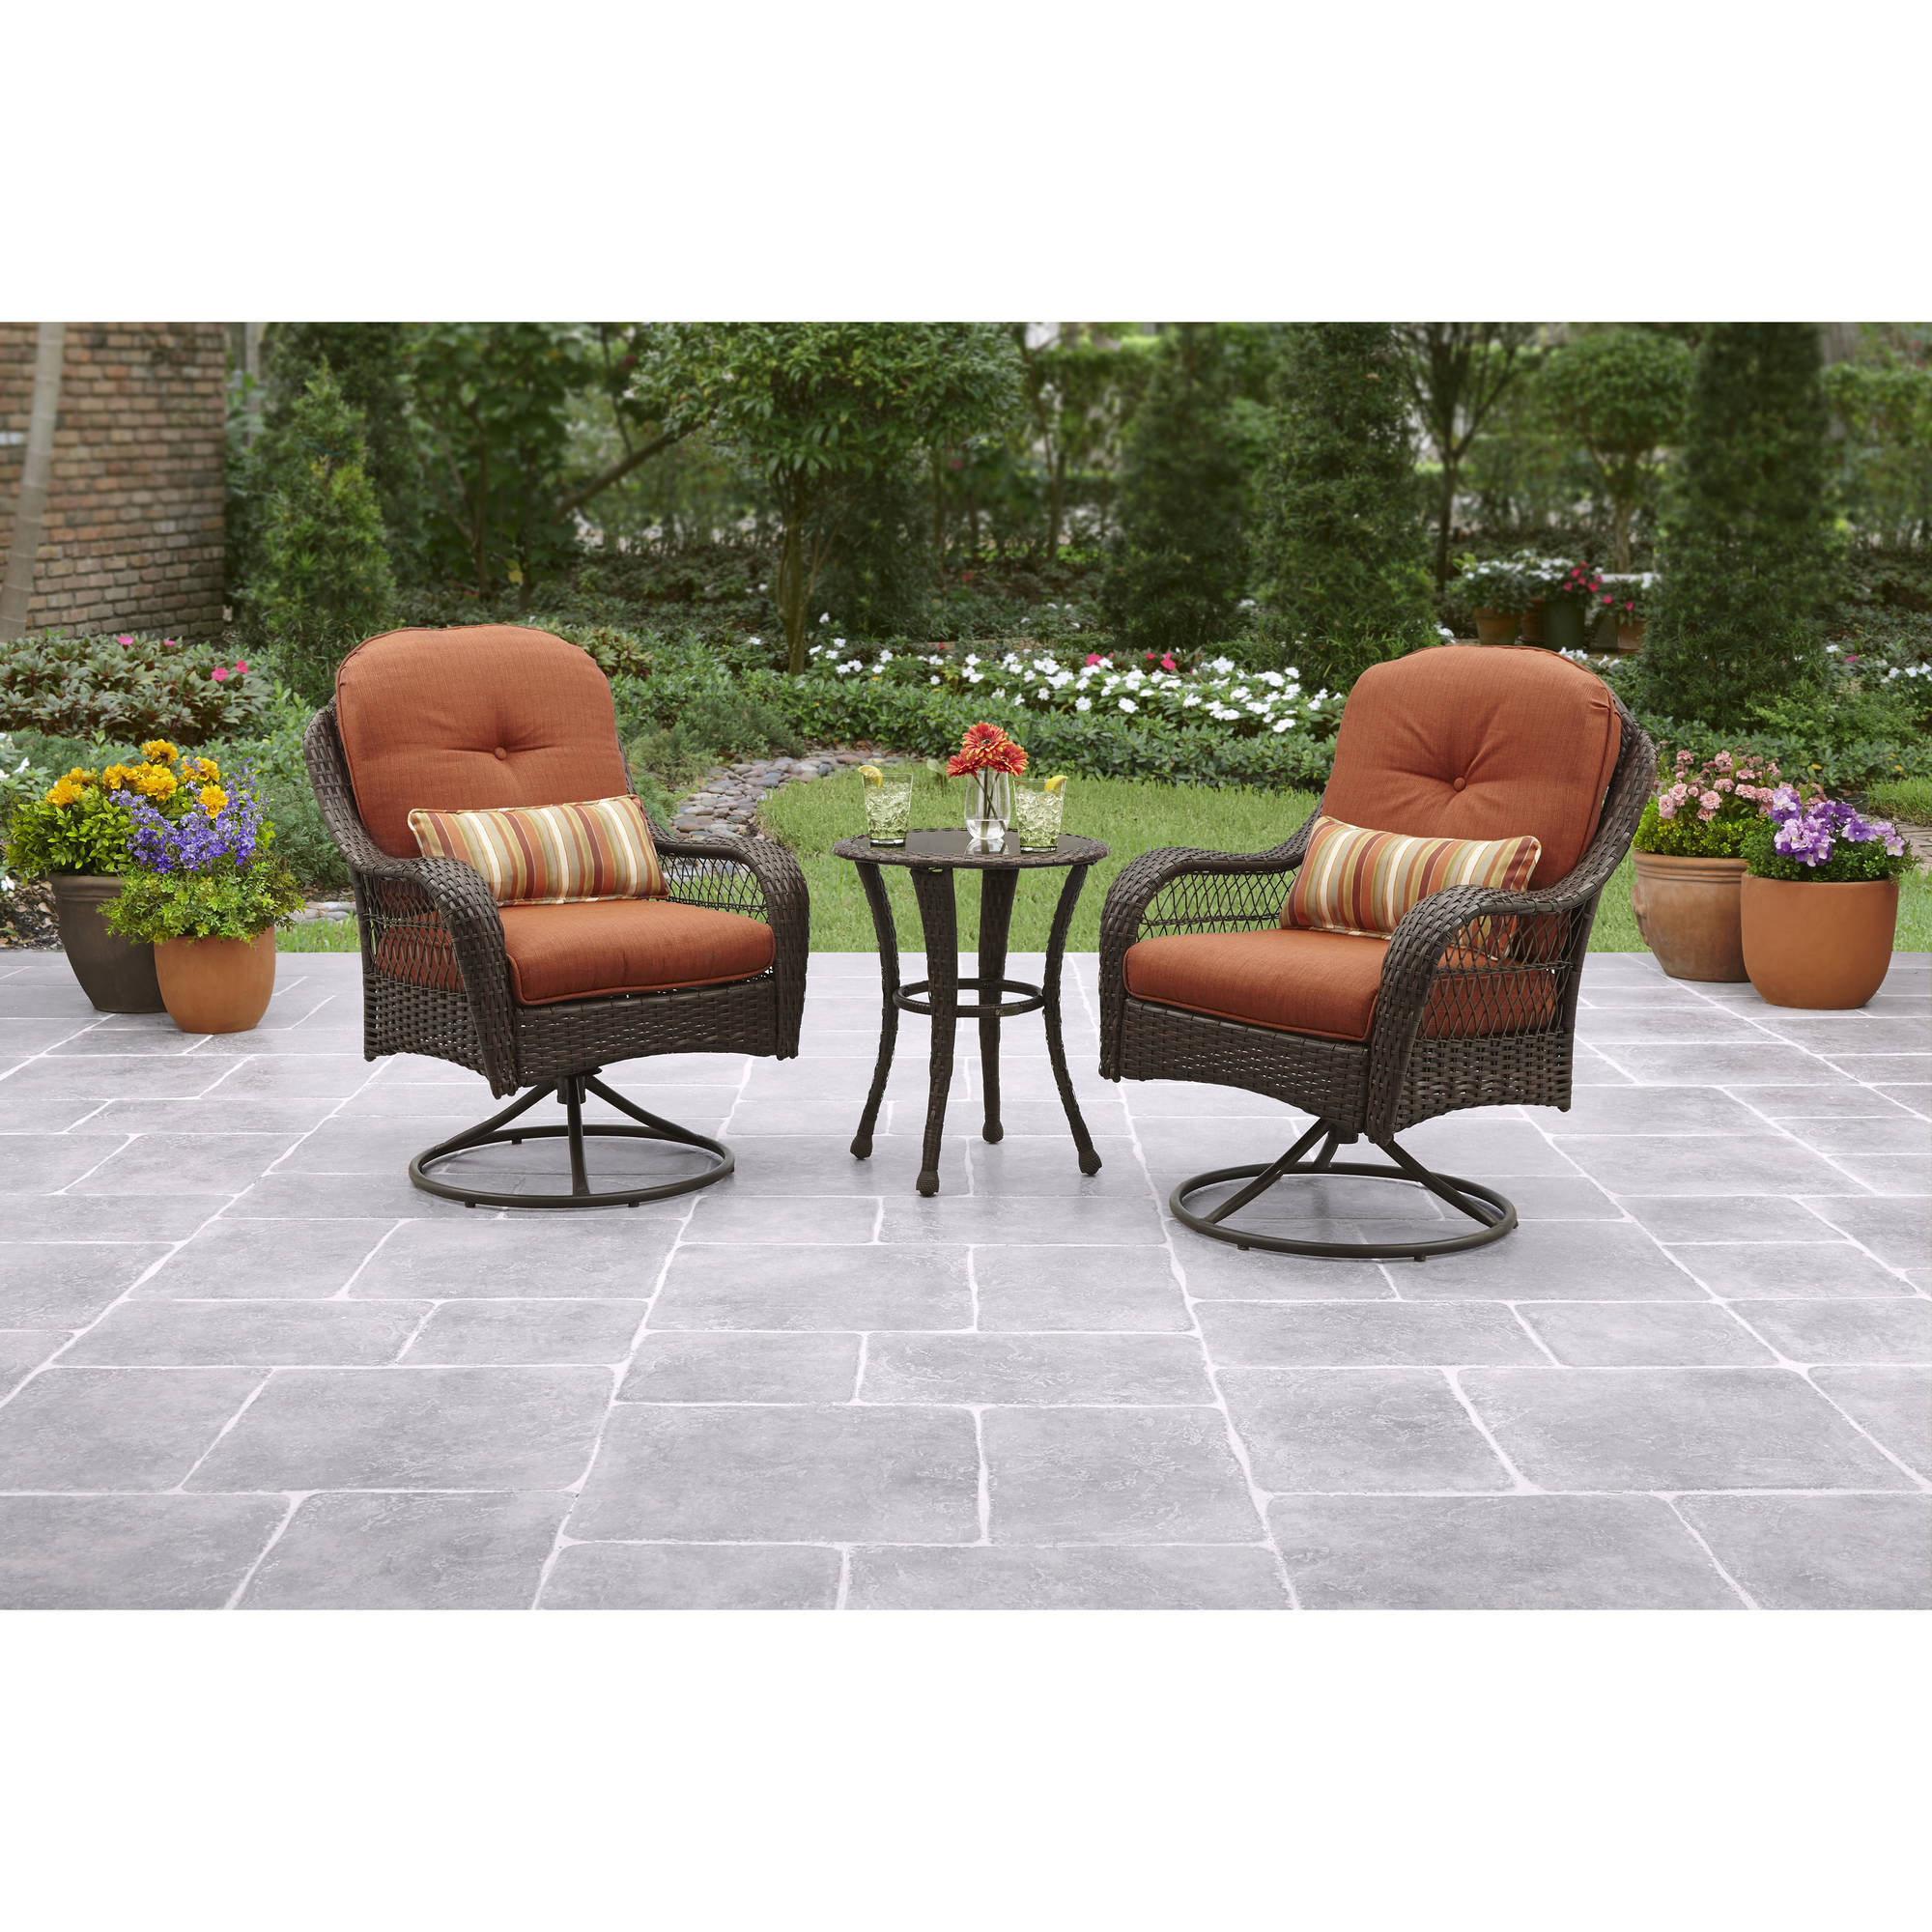 Details about better homes and gardens azalea ridge 3 piece outdoor bistro set seats 2